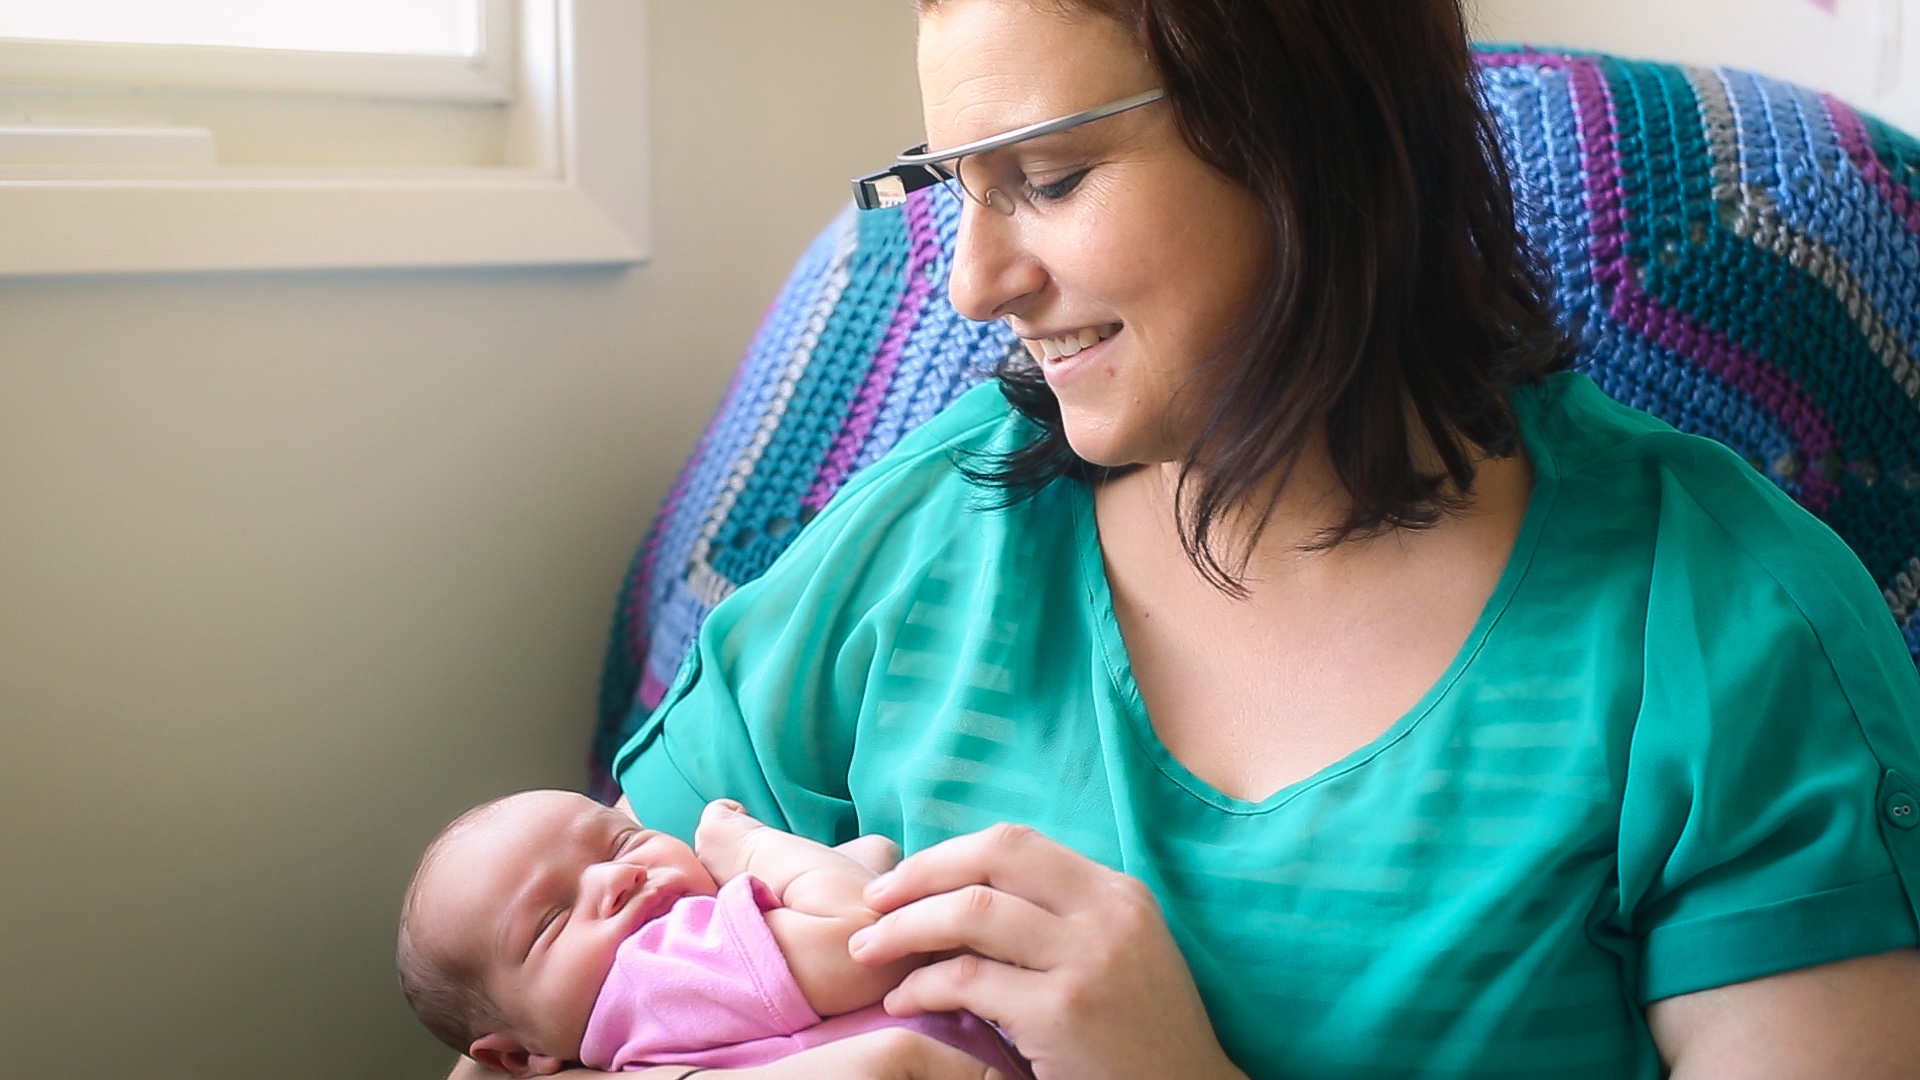 Small World Social   Breastfeeding Support Project Trial Participant   Laura Loricco with daughter Grace.